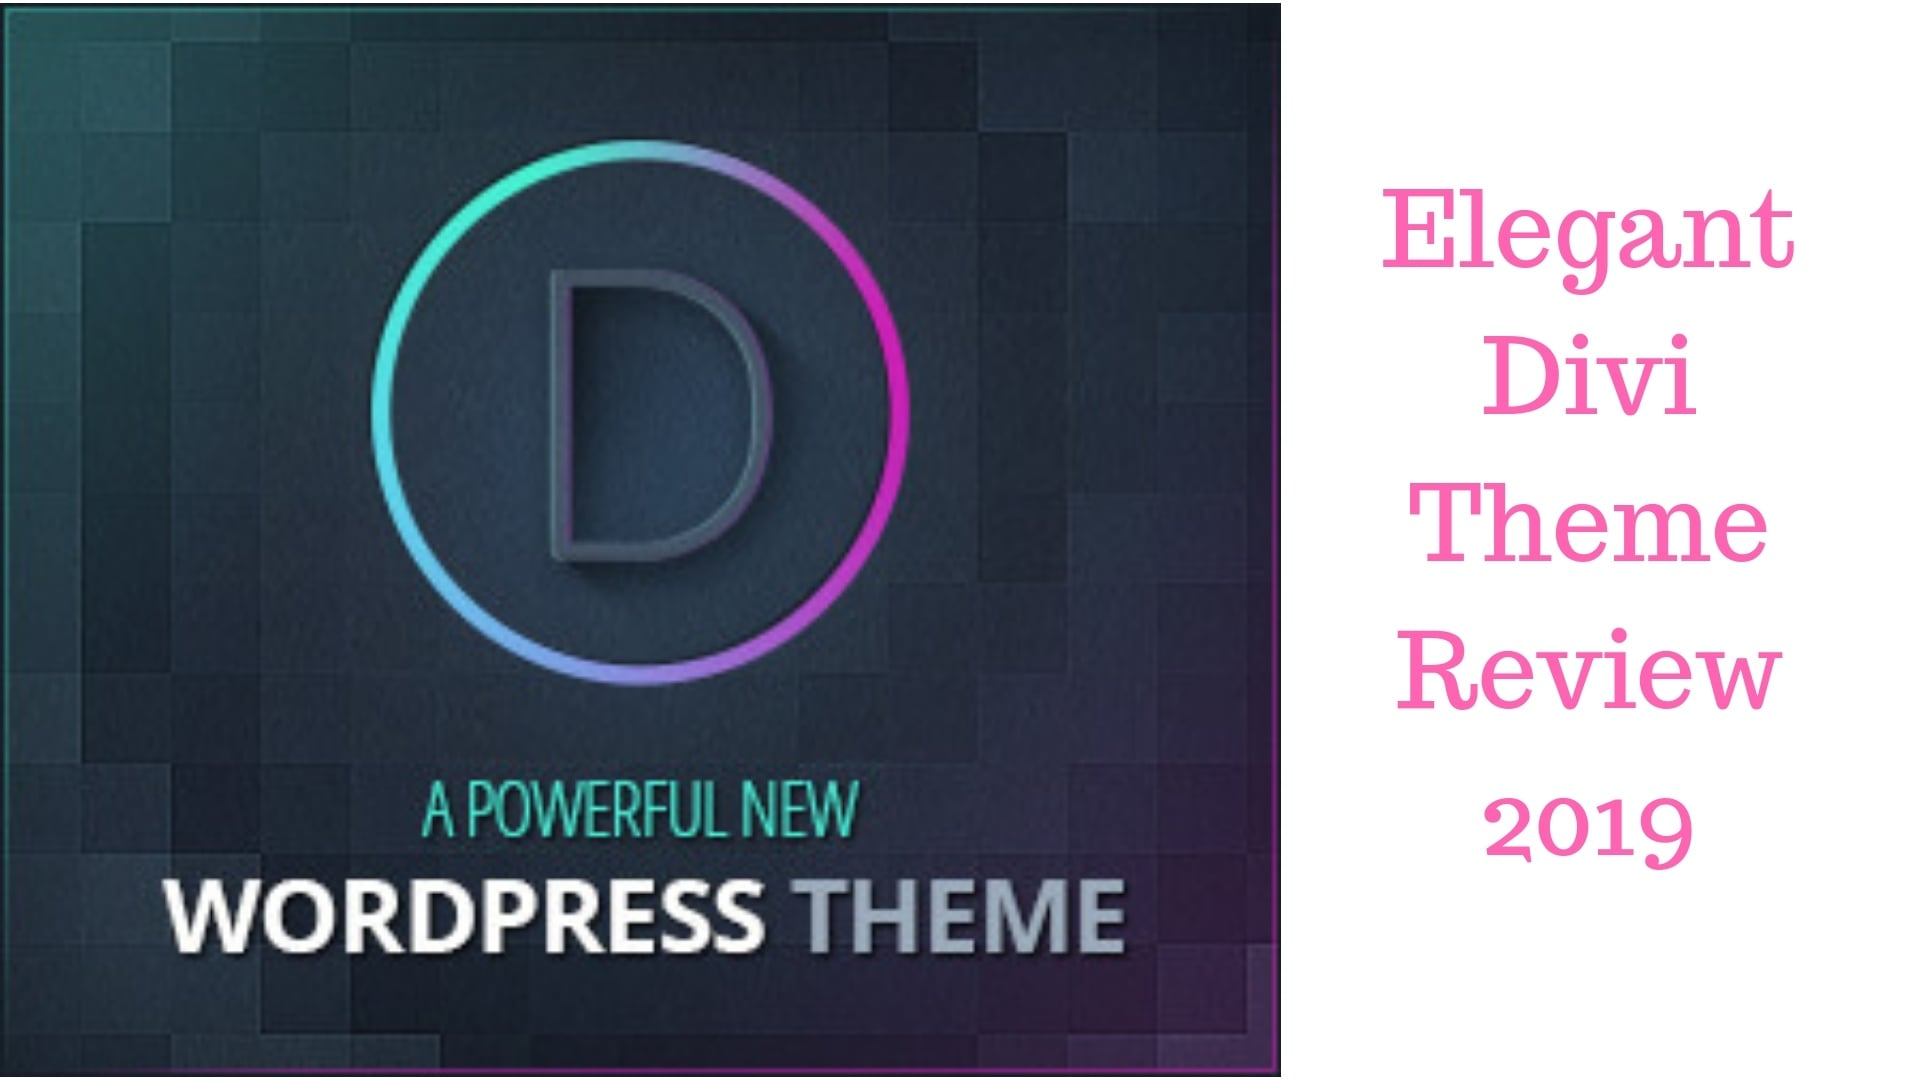 Elegant Divi Theme Review 2019 –Is It Worth For Joining? 4